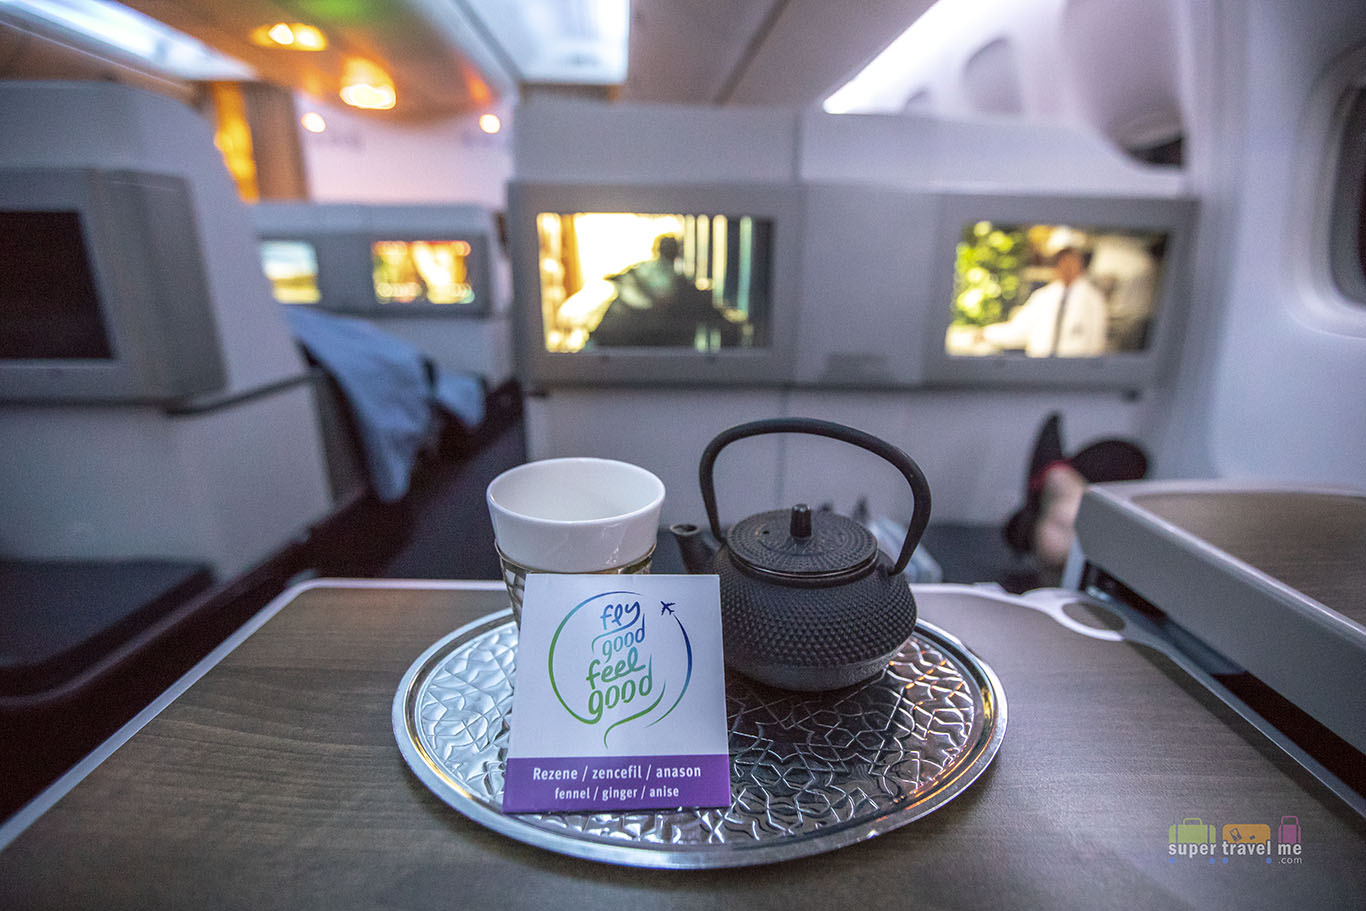 Turkish Airlines Fly Good Feel Good Teas in Business Class